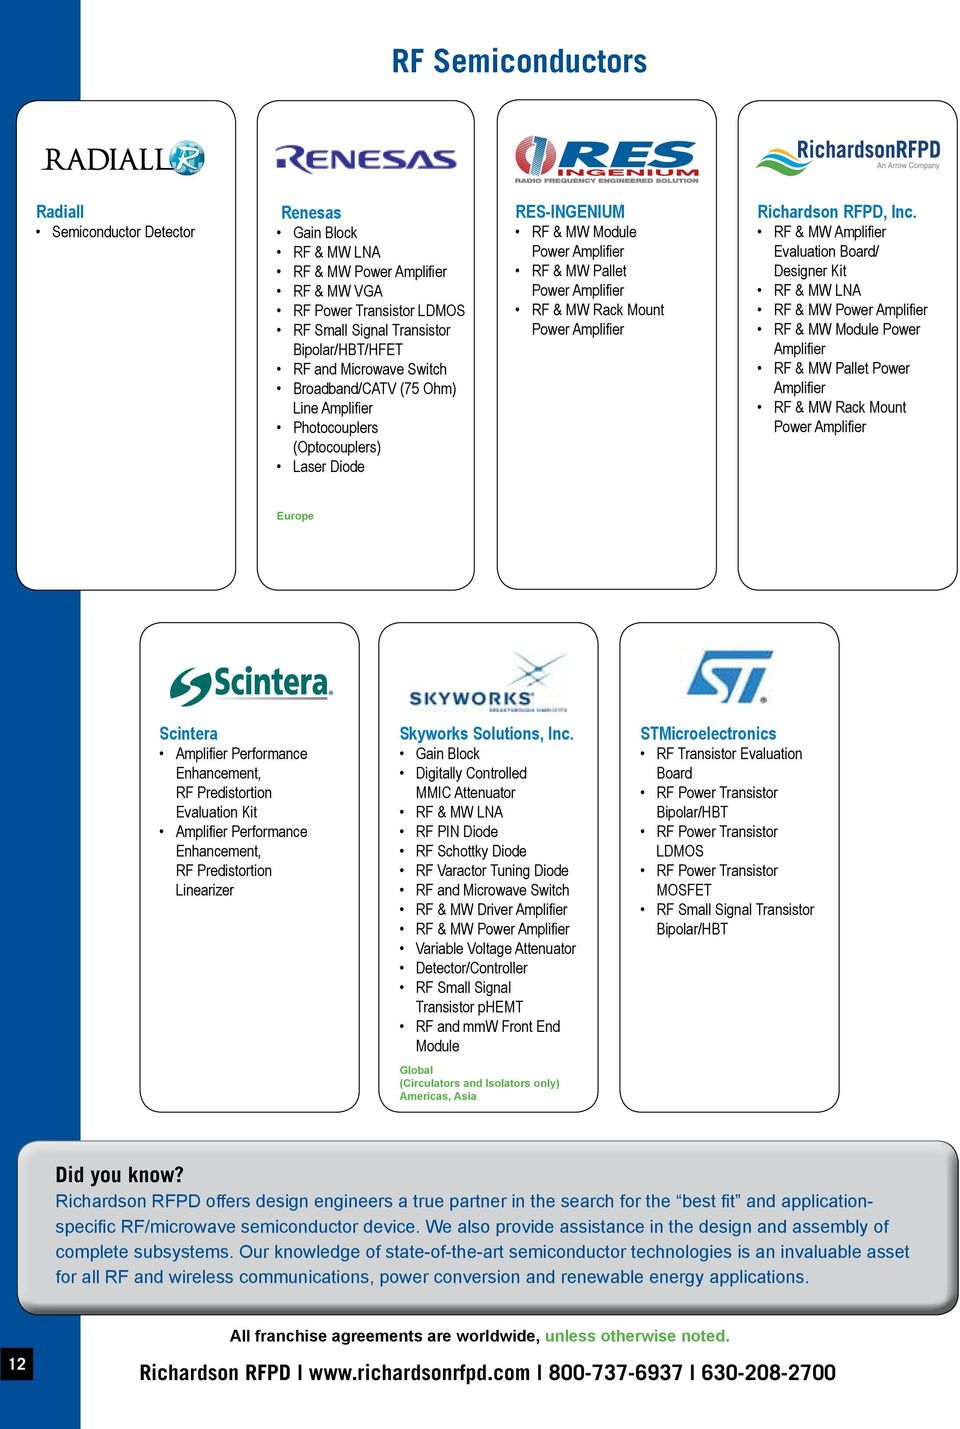 For Rf Wireless Energy Technologies Supplier Line Card 2012 Selecting If Bandpass Filters Via Series Shunt Pindiode Switching Can Amplifier Richardson Rfpd Inc